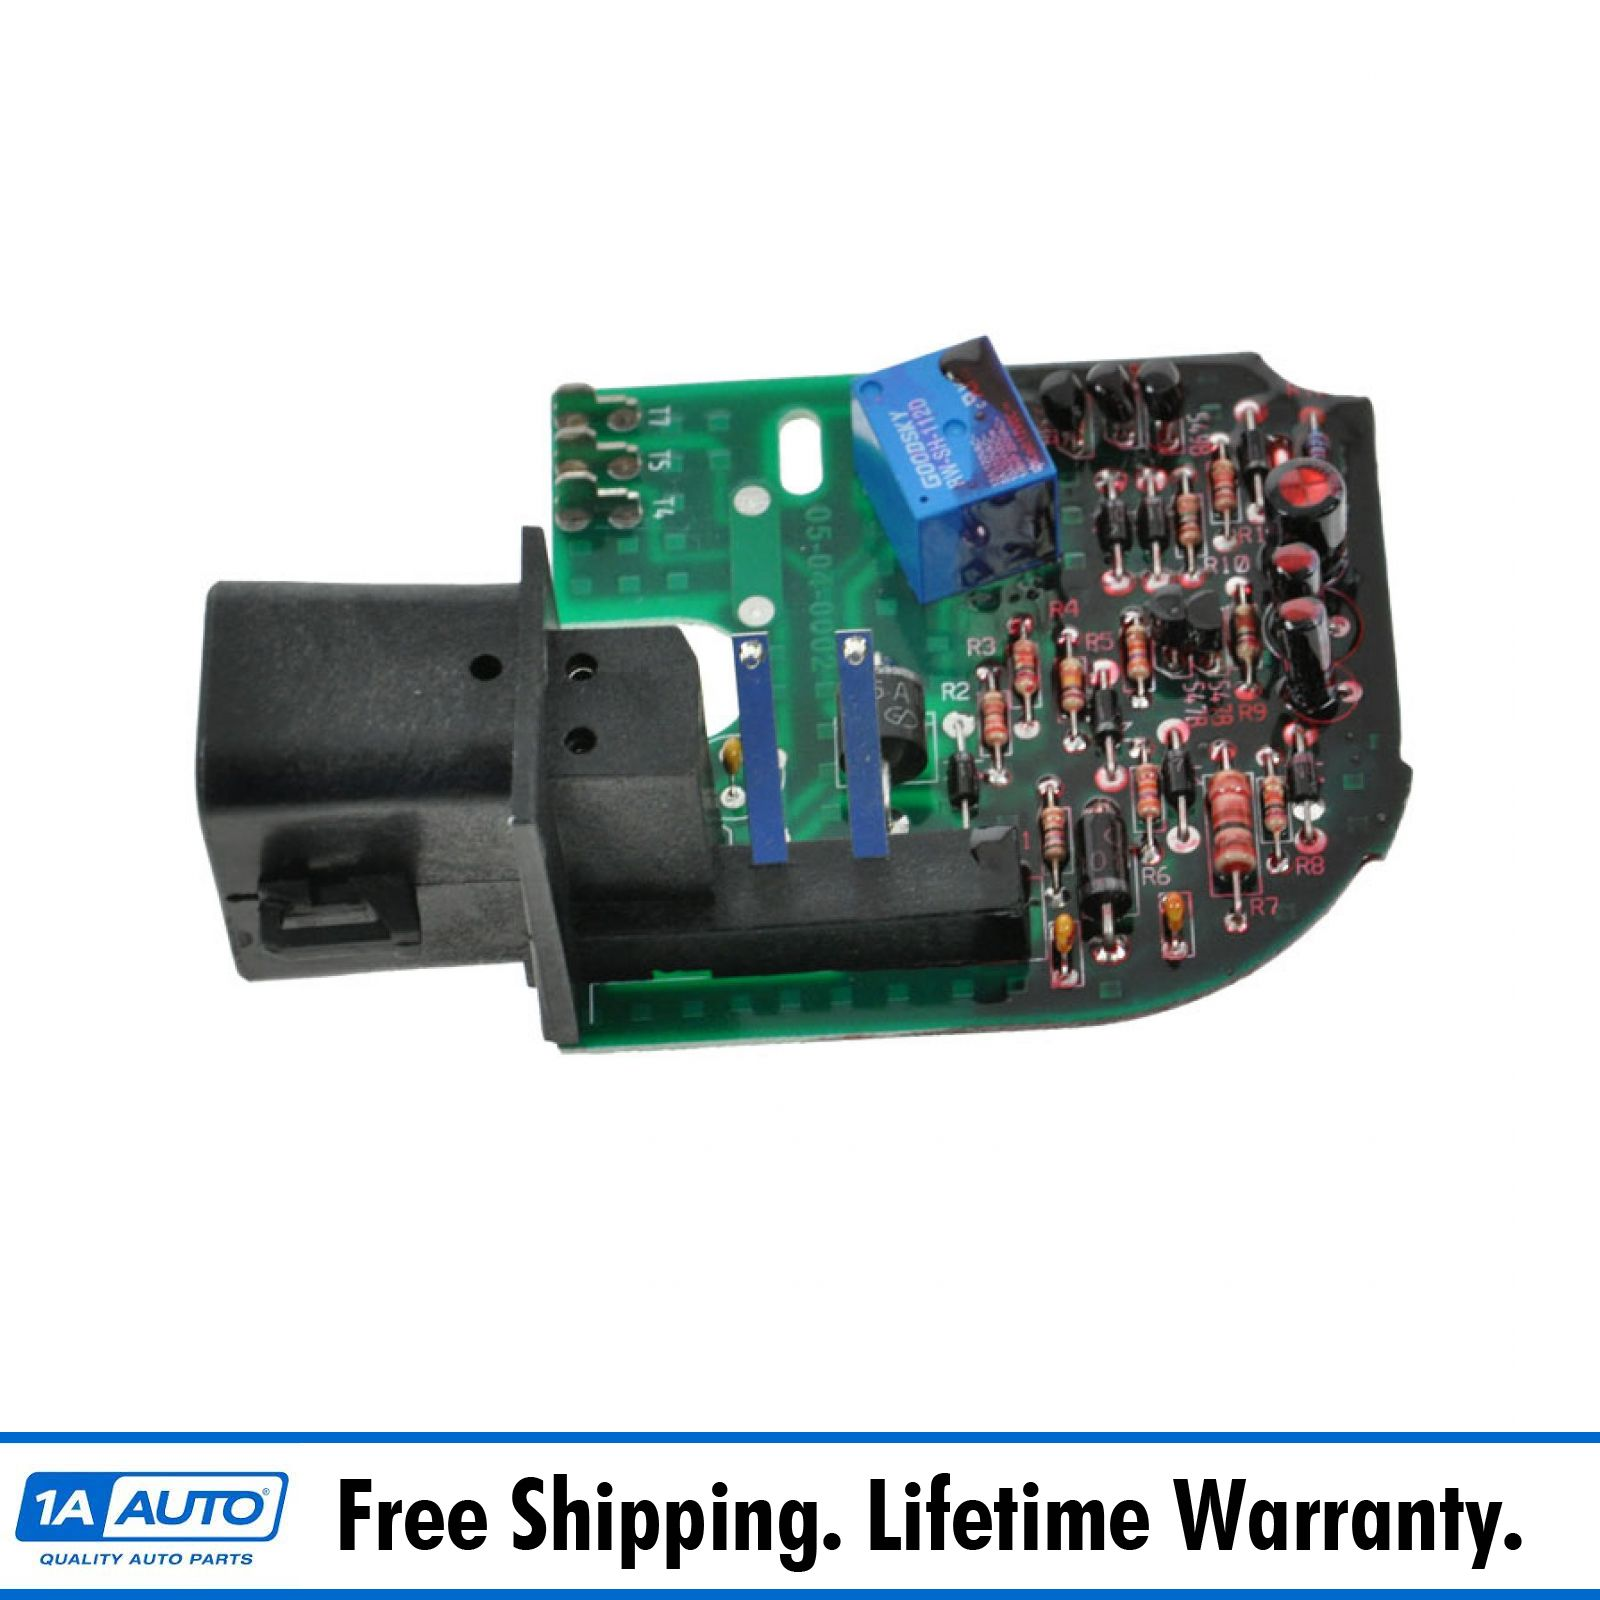 Details about Wiper Pulse Delay Board Unit Module for Chevy GMC Tahoe  Pickup Truck S15 Olds